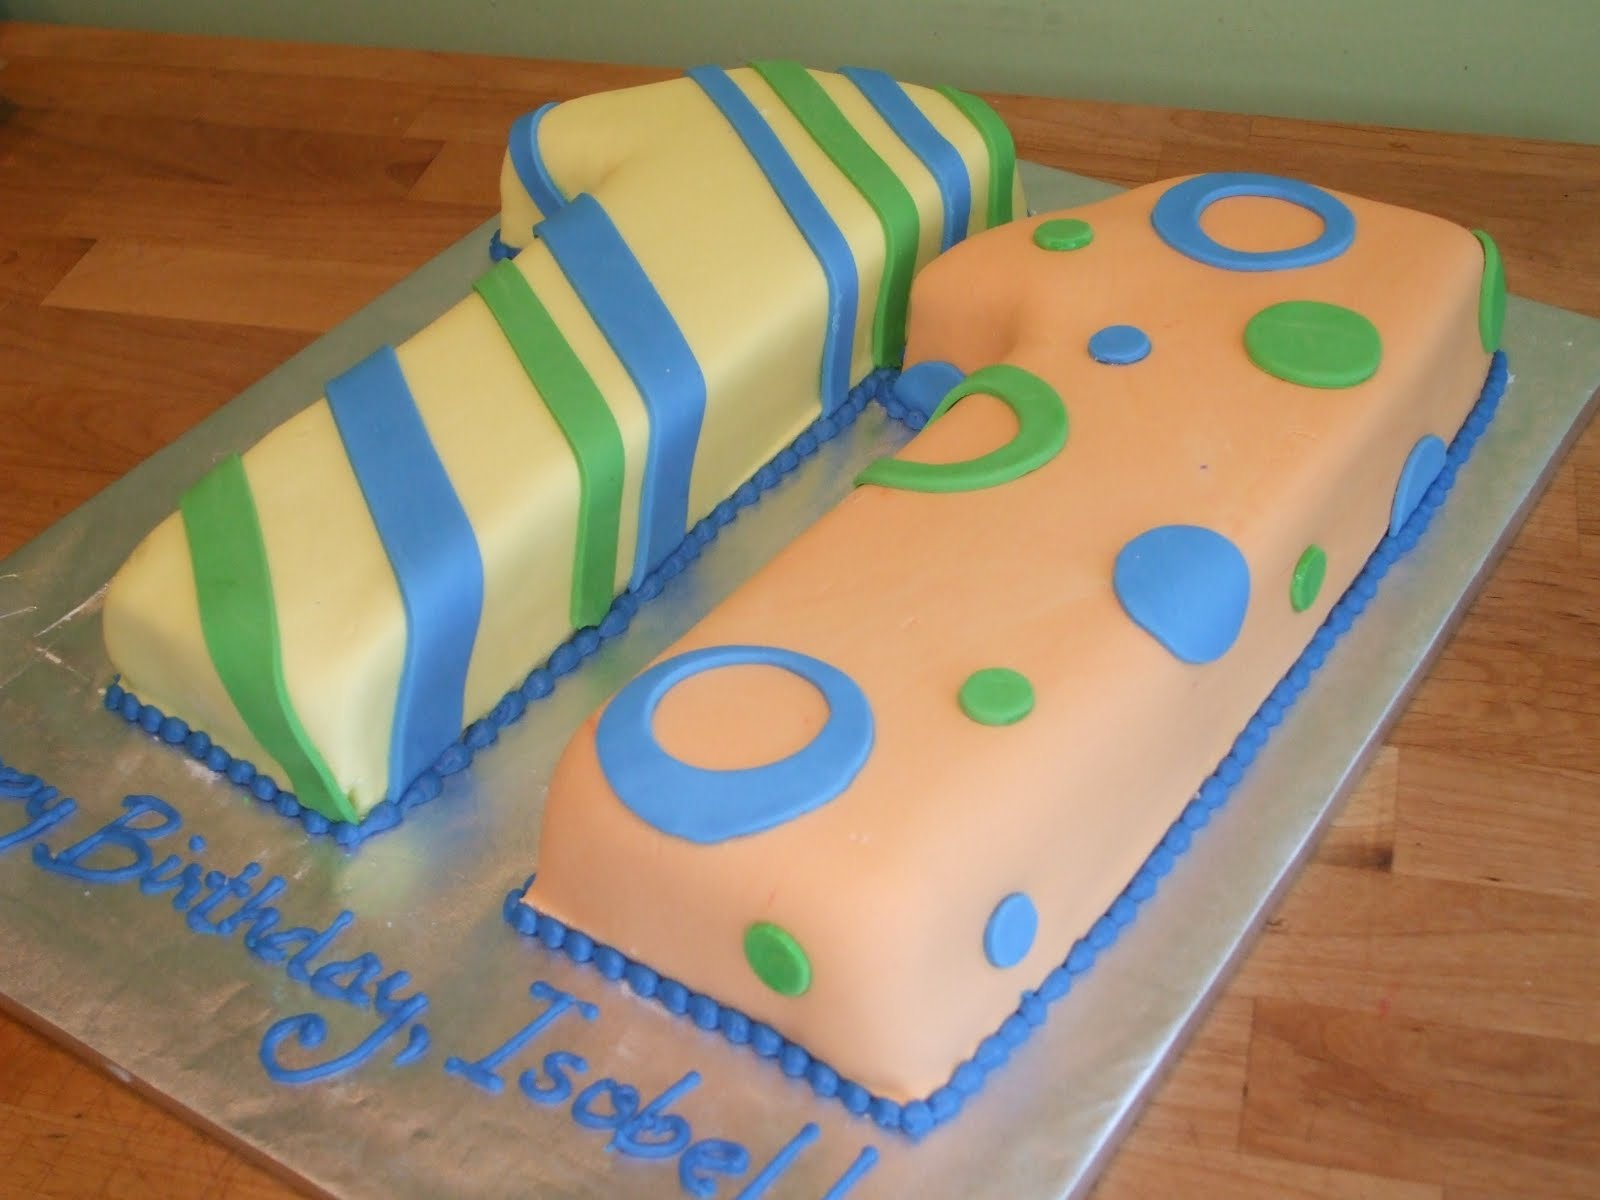 11 year old birthday cake ideas for boys